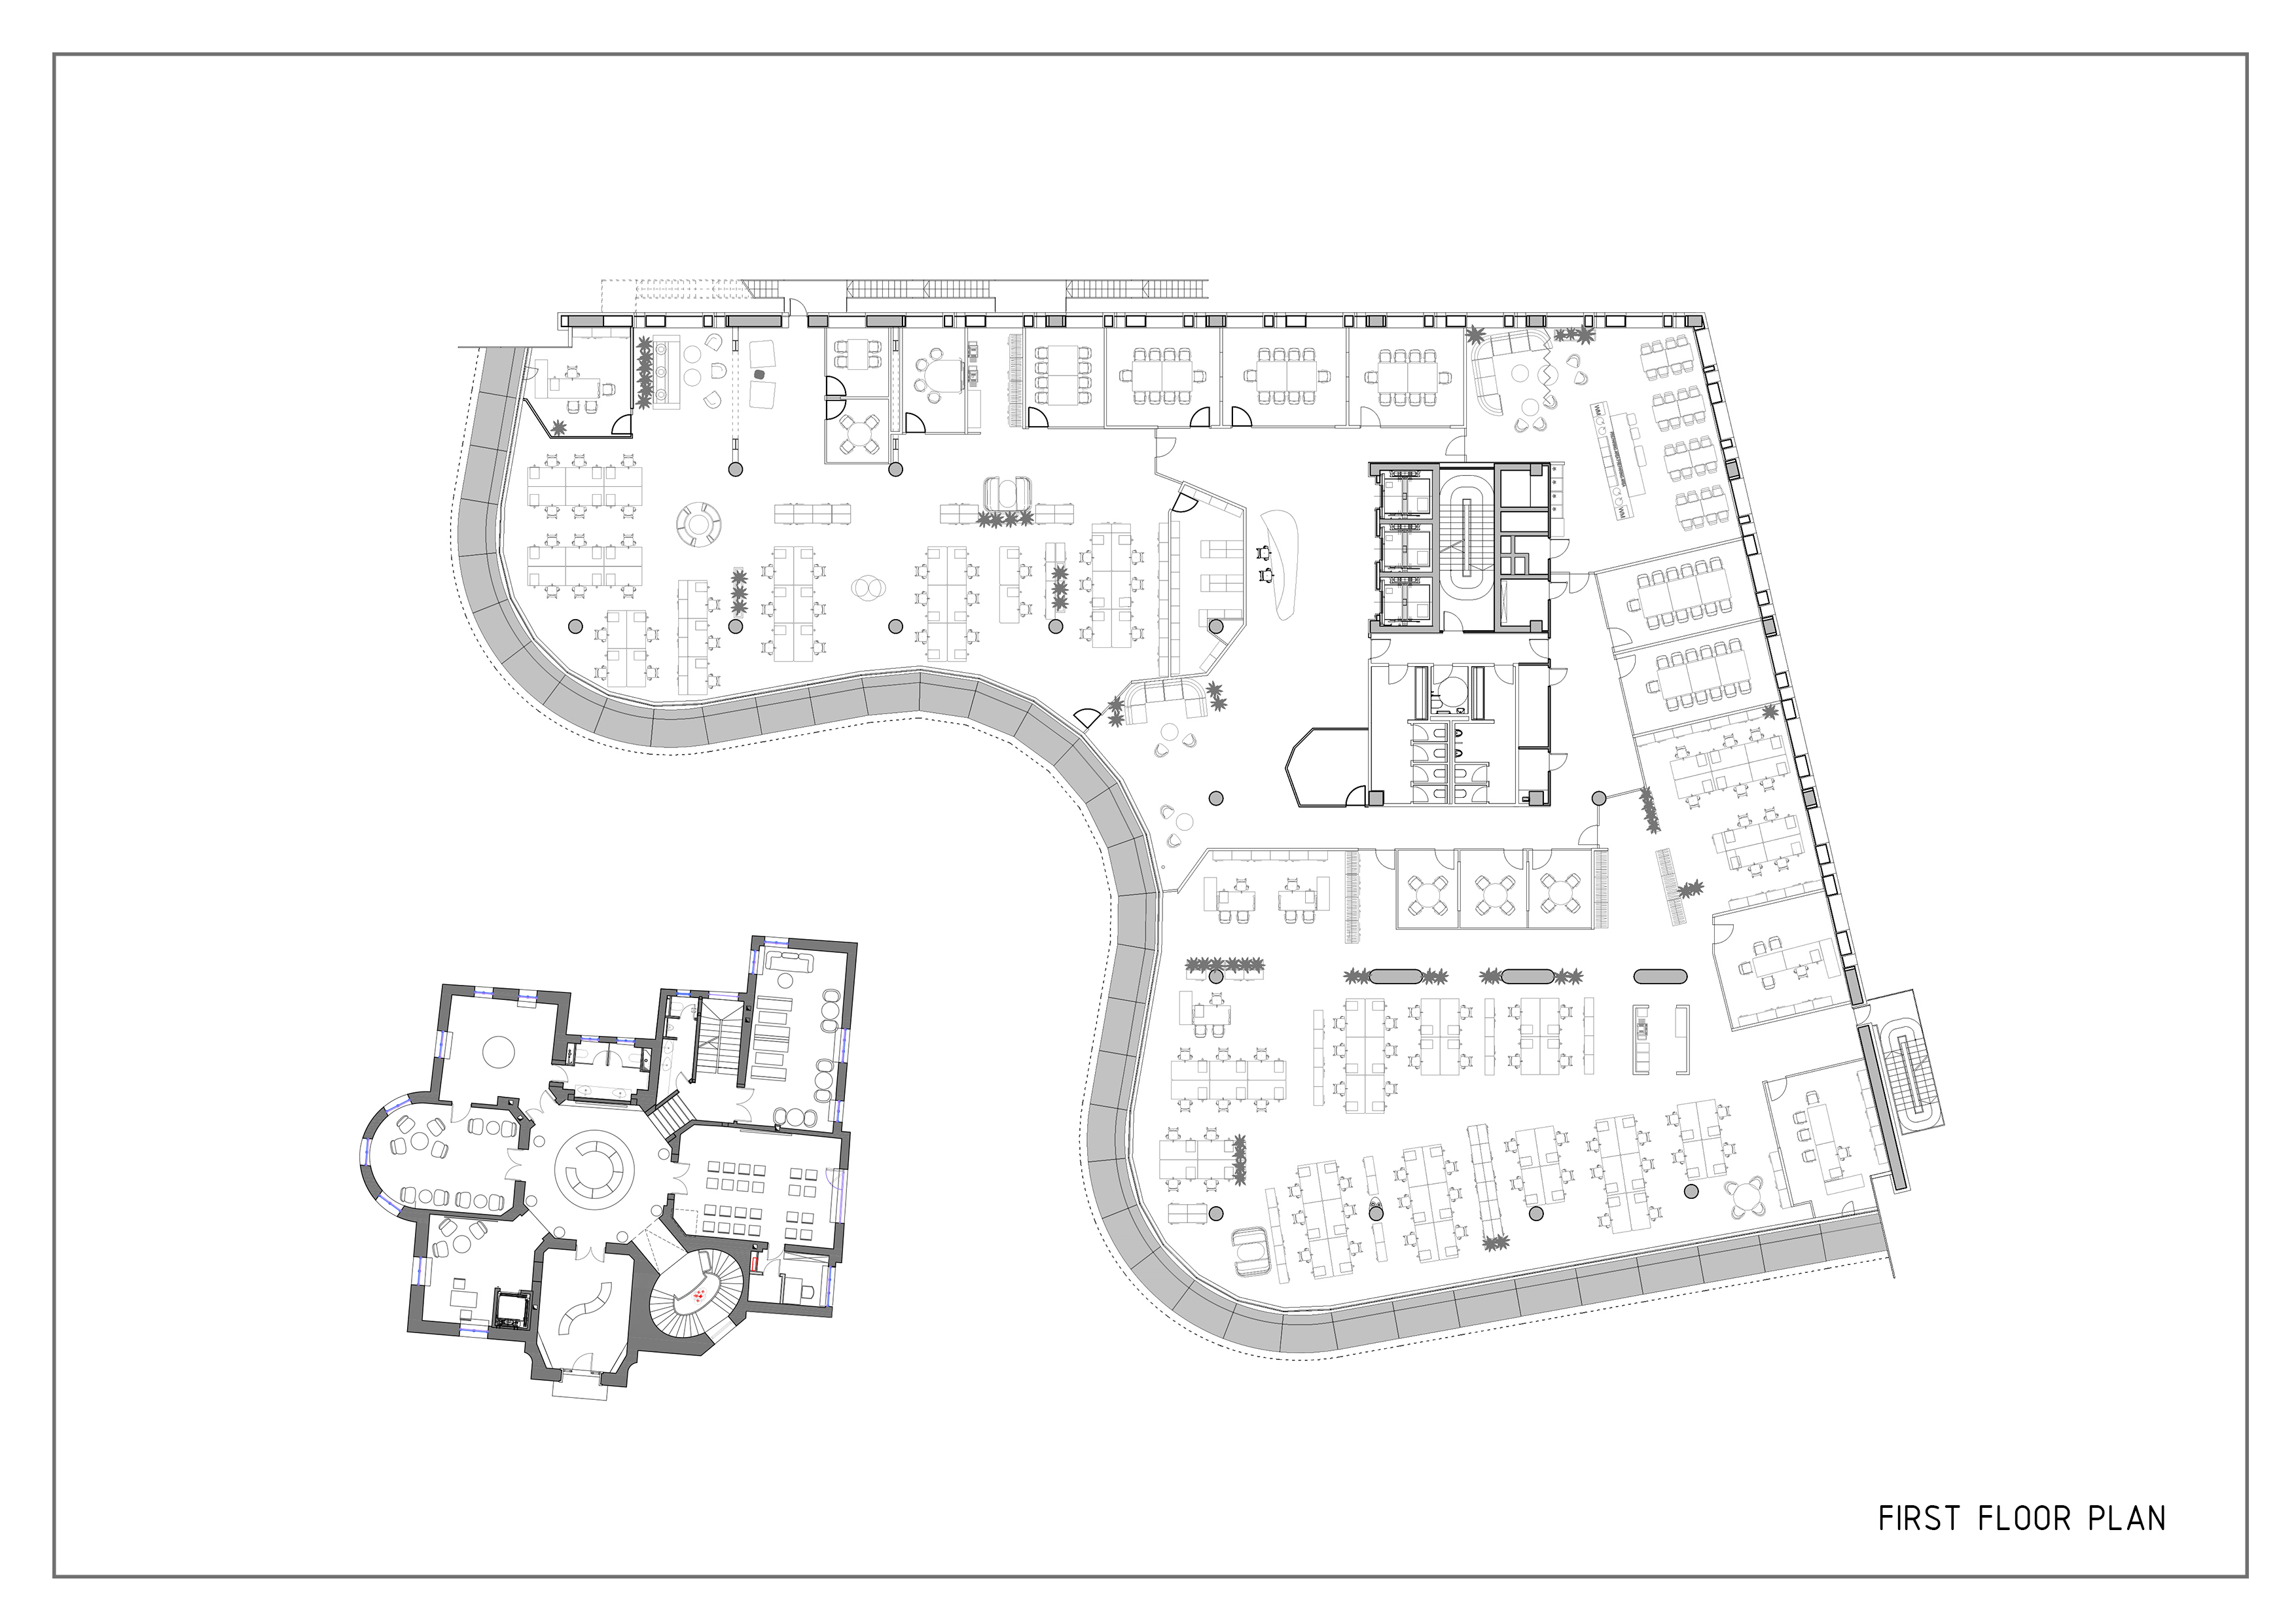 DSBA_FIRST FLOOR PLAN